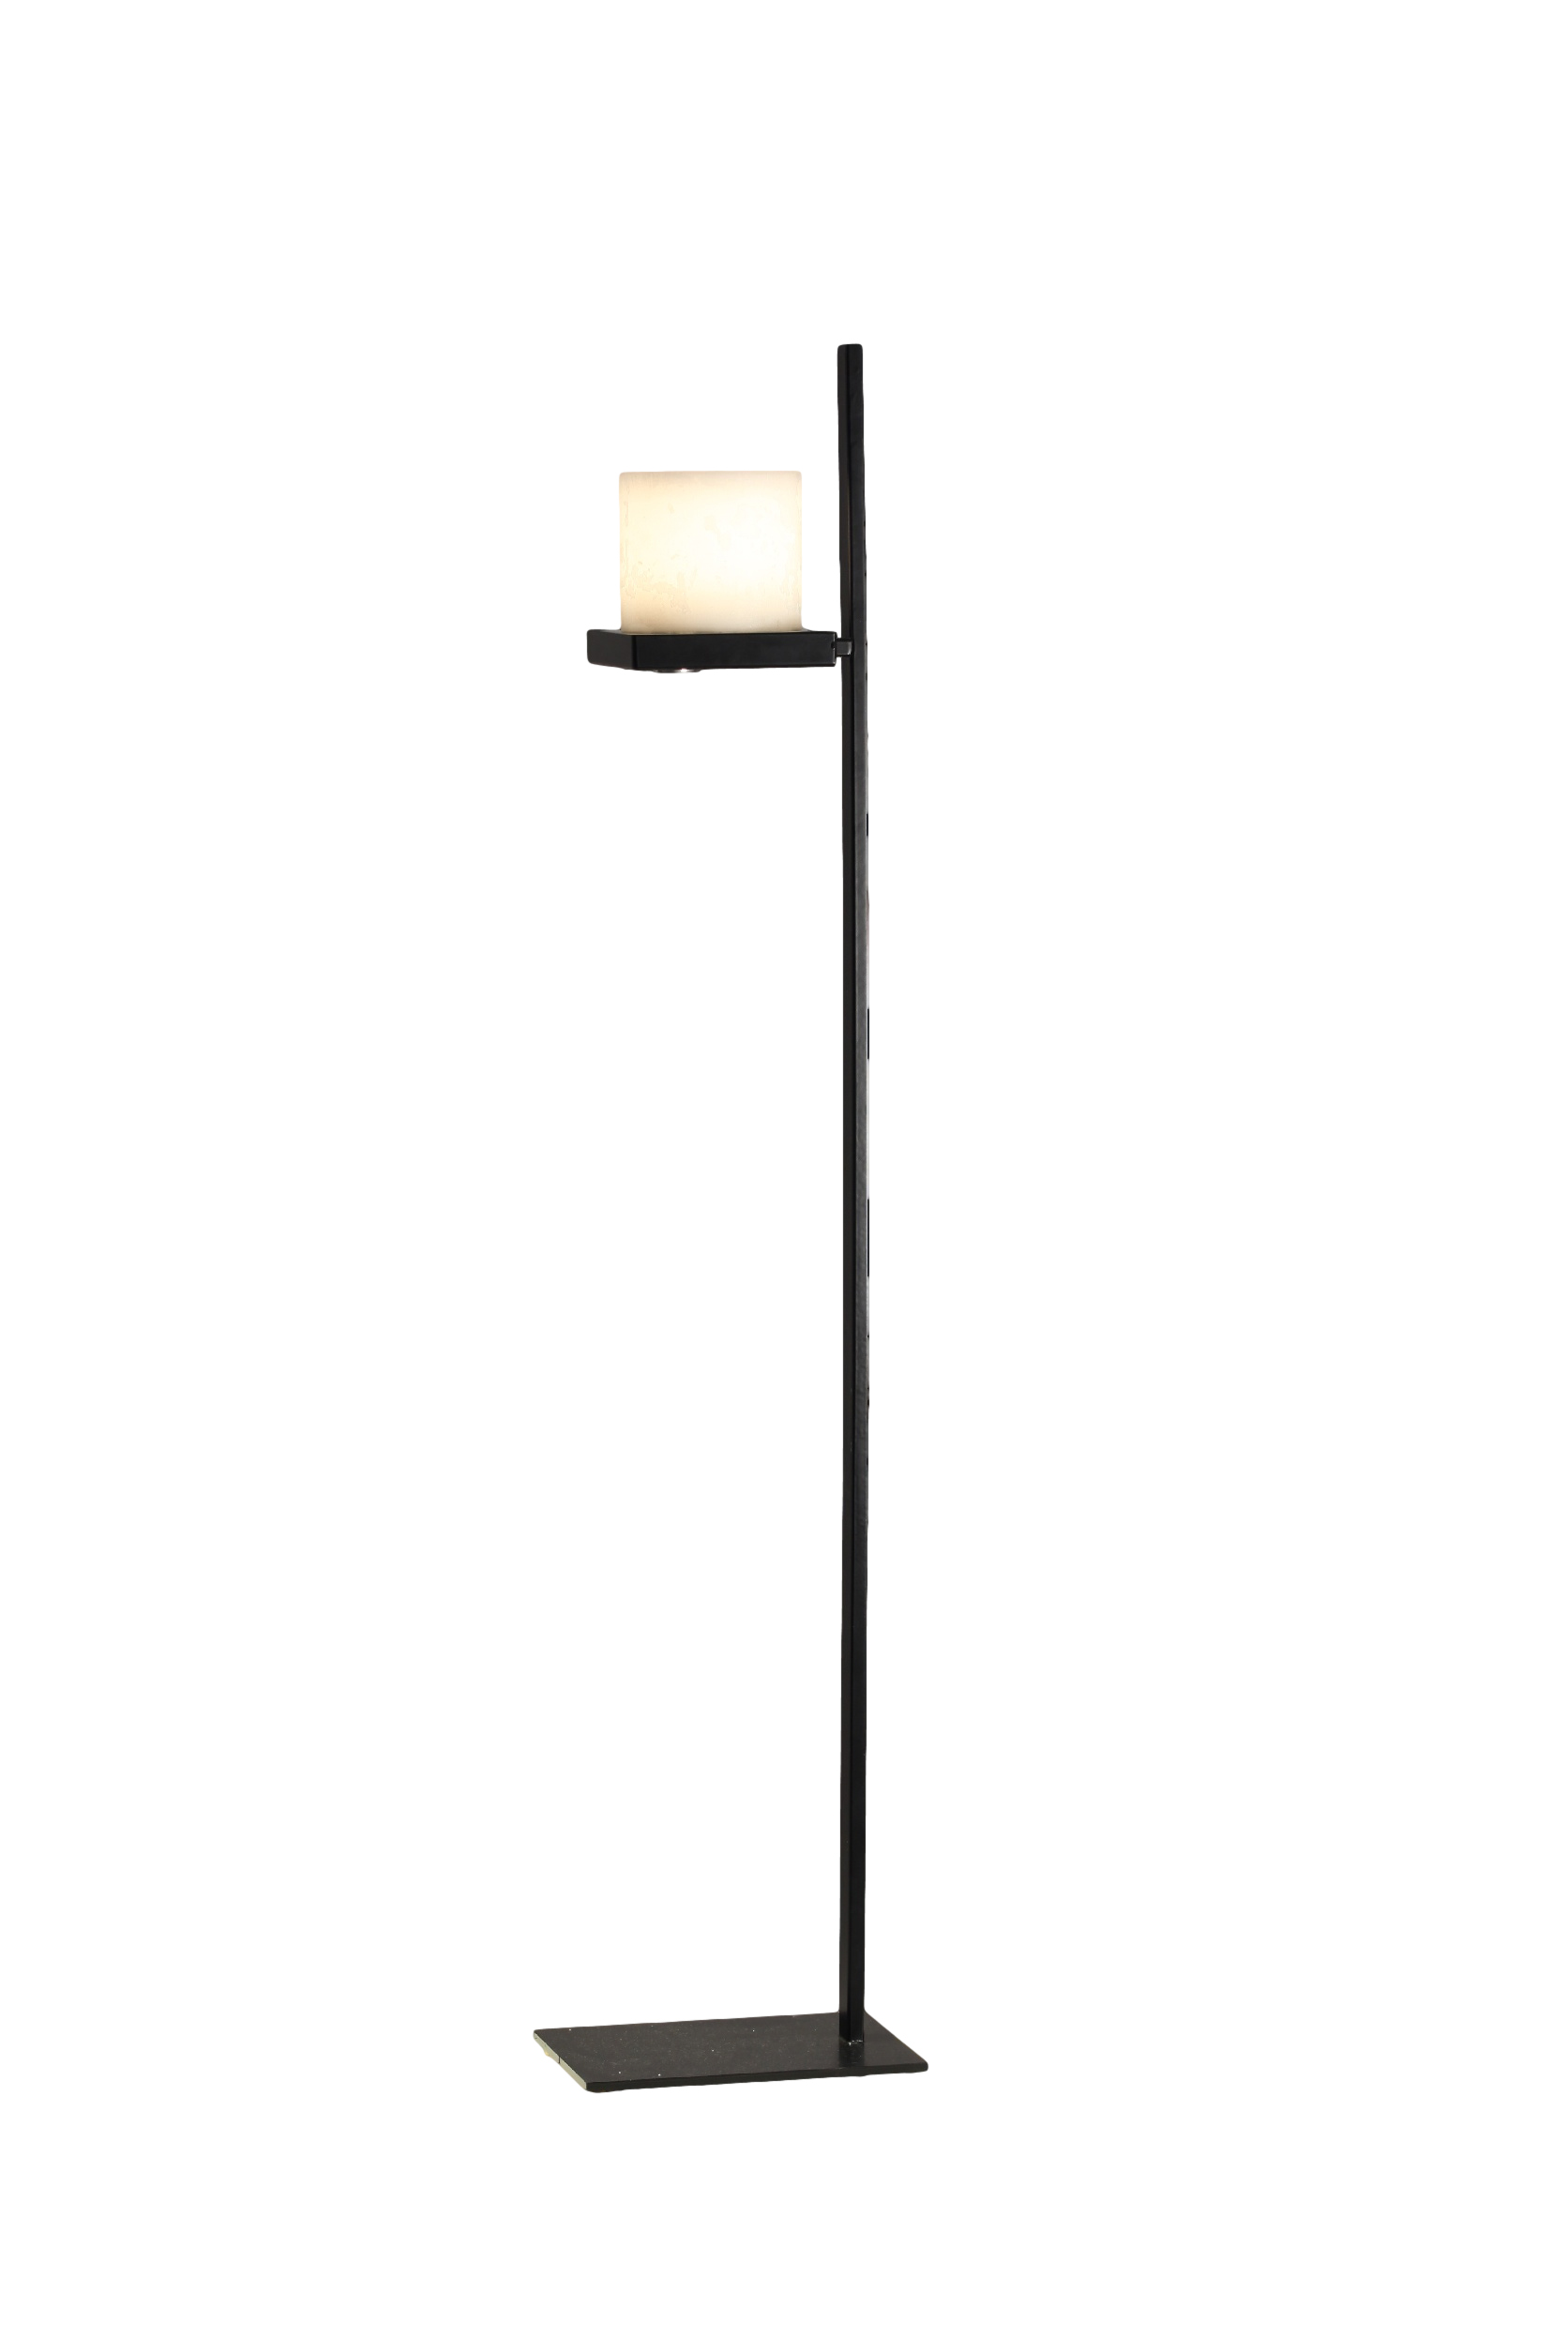 Stout Verlichting Collectie Sfeerfoto Vloerlamp Candle Fusion LED